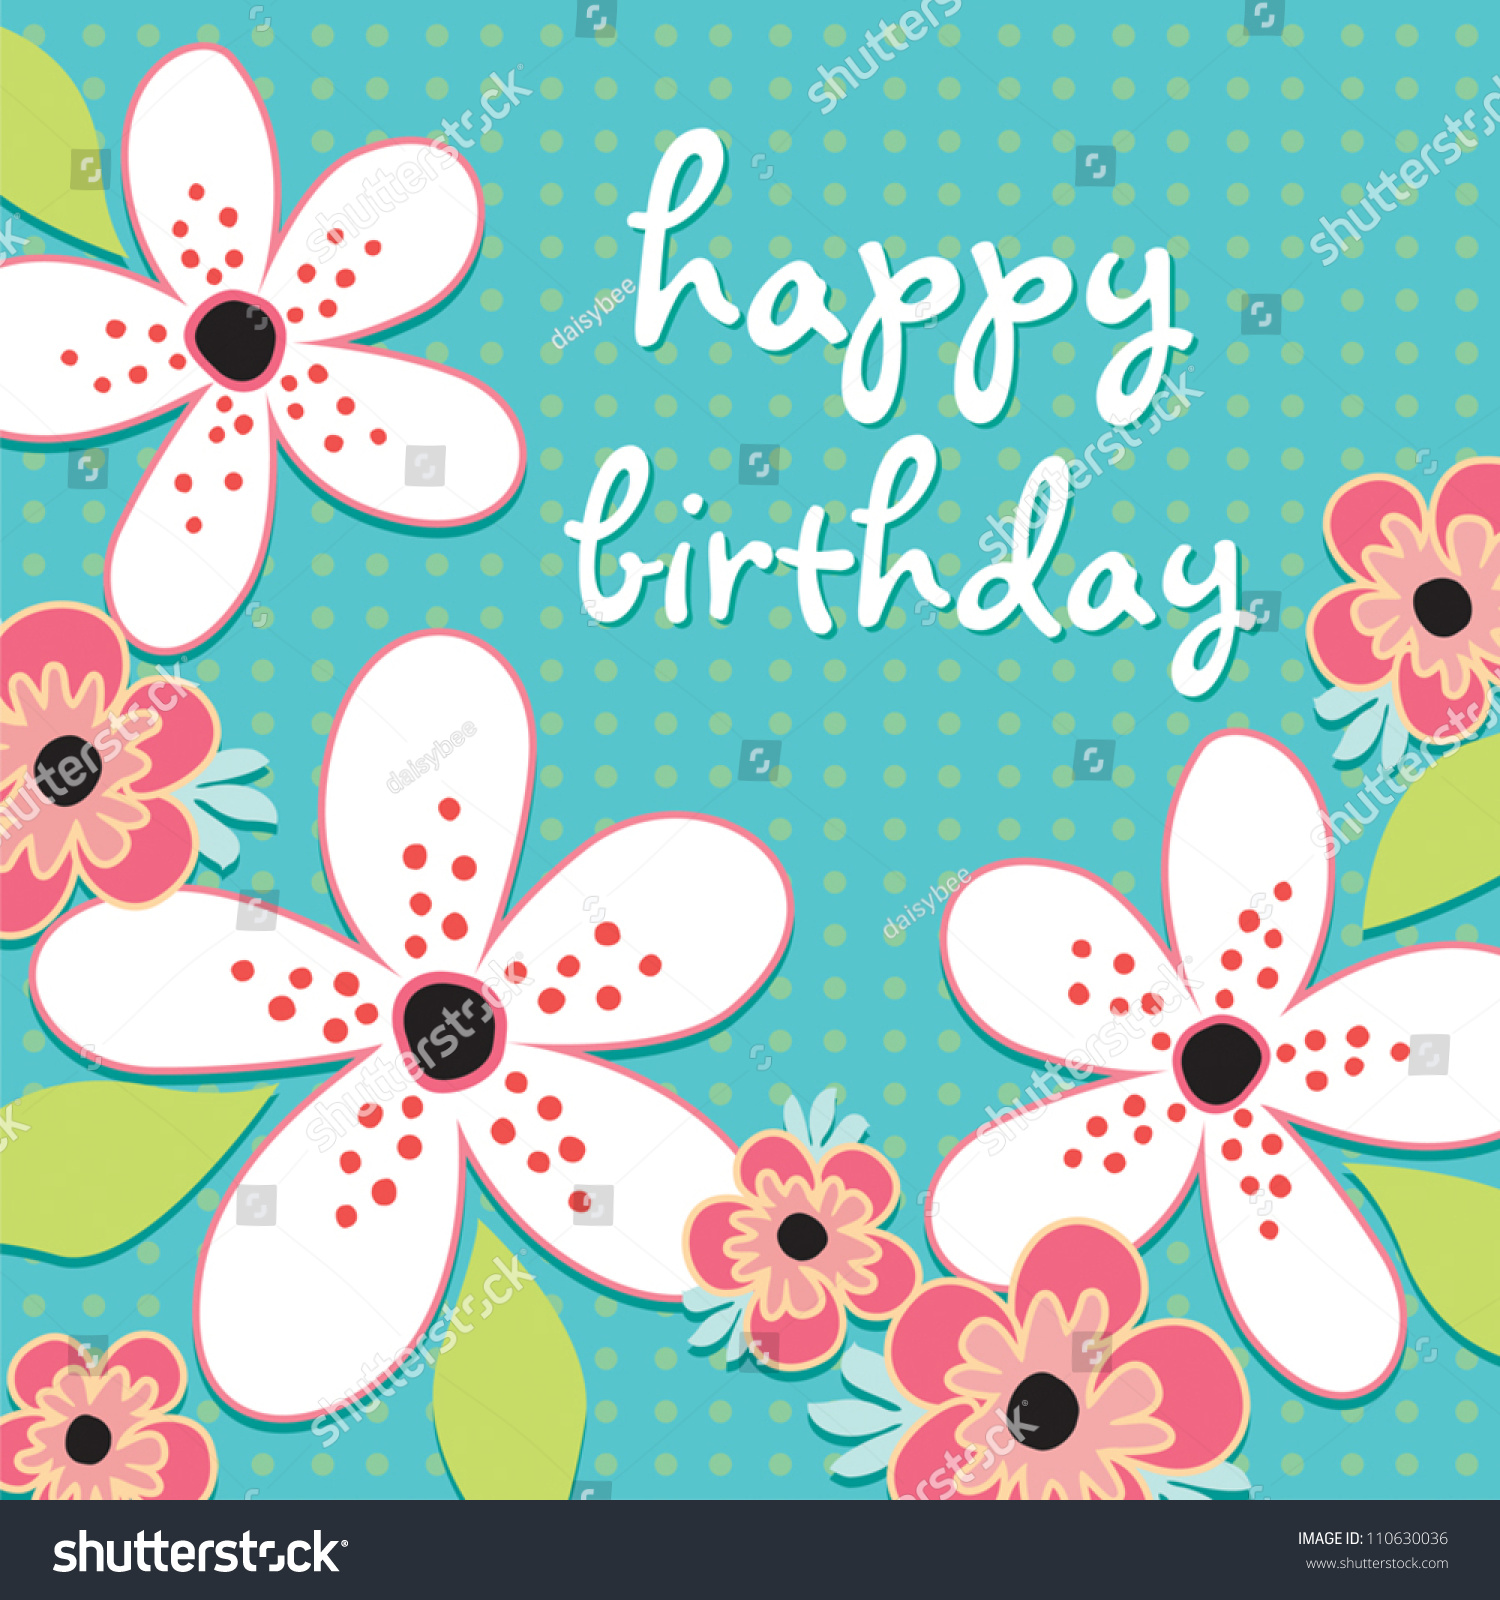 Vector Greeting Card Template In Aqua And White Suitable For